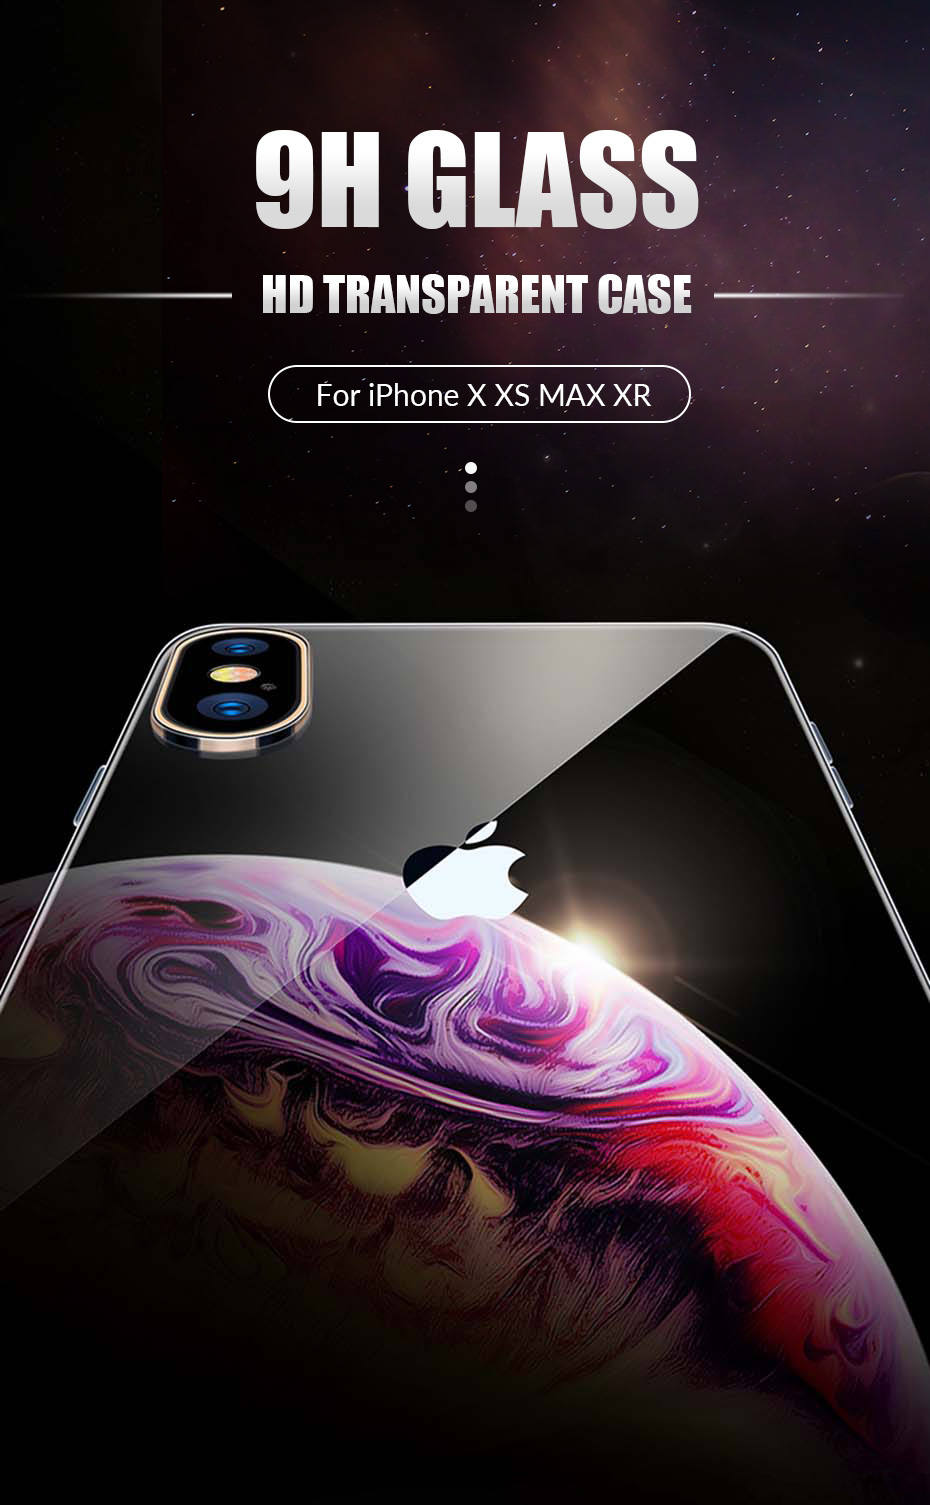 Transparent-Glass-case-for-iphone-xr-xs-max_01